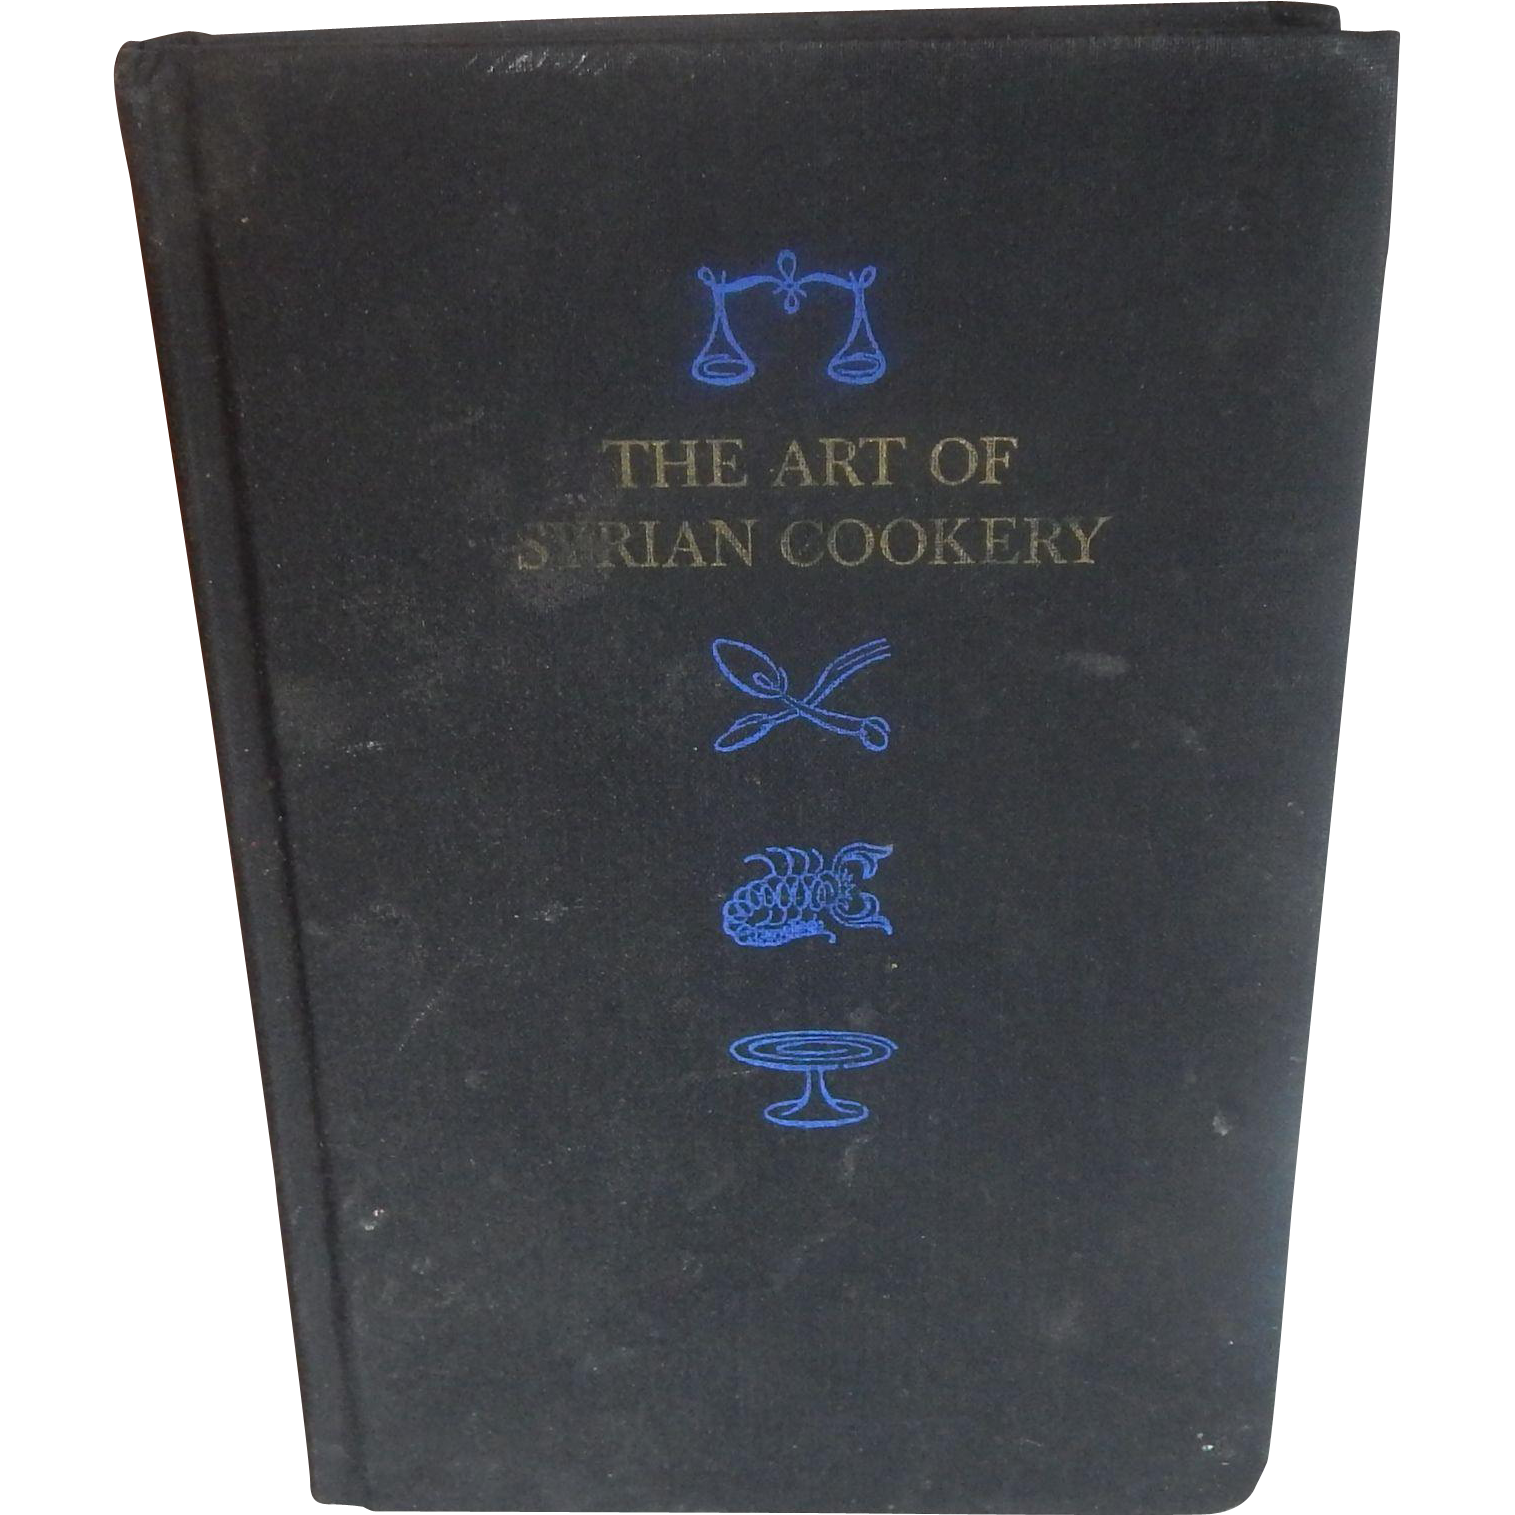 The Art Of Syrain Cookery by Helen Corey